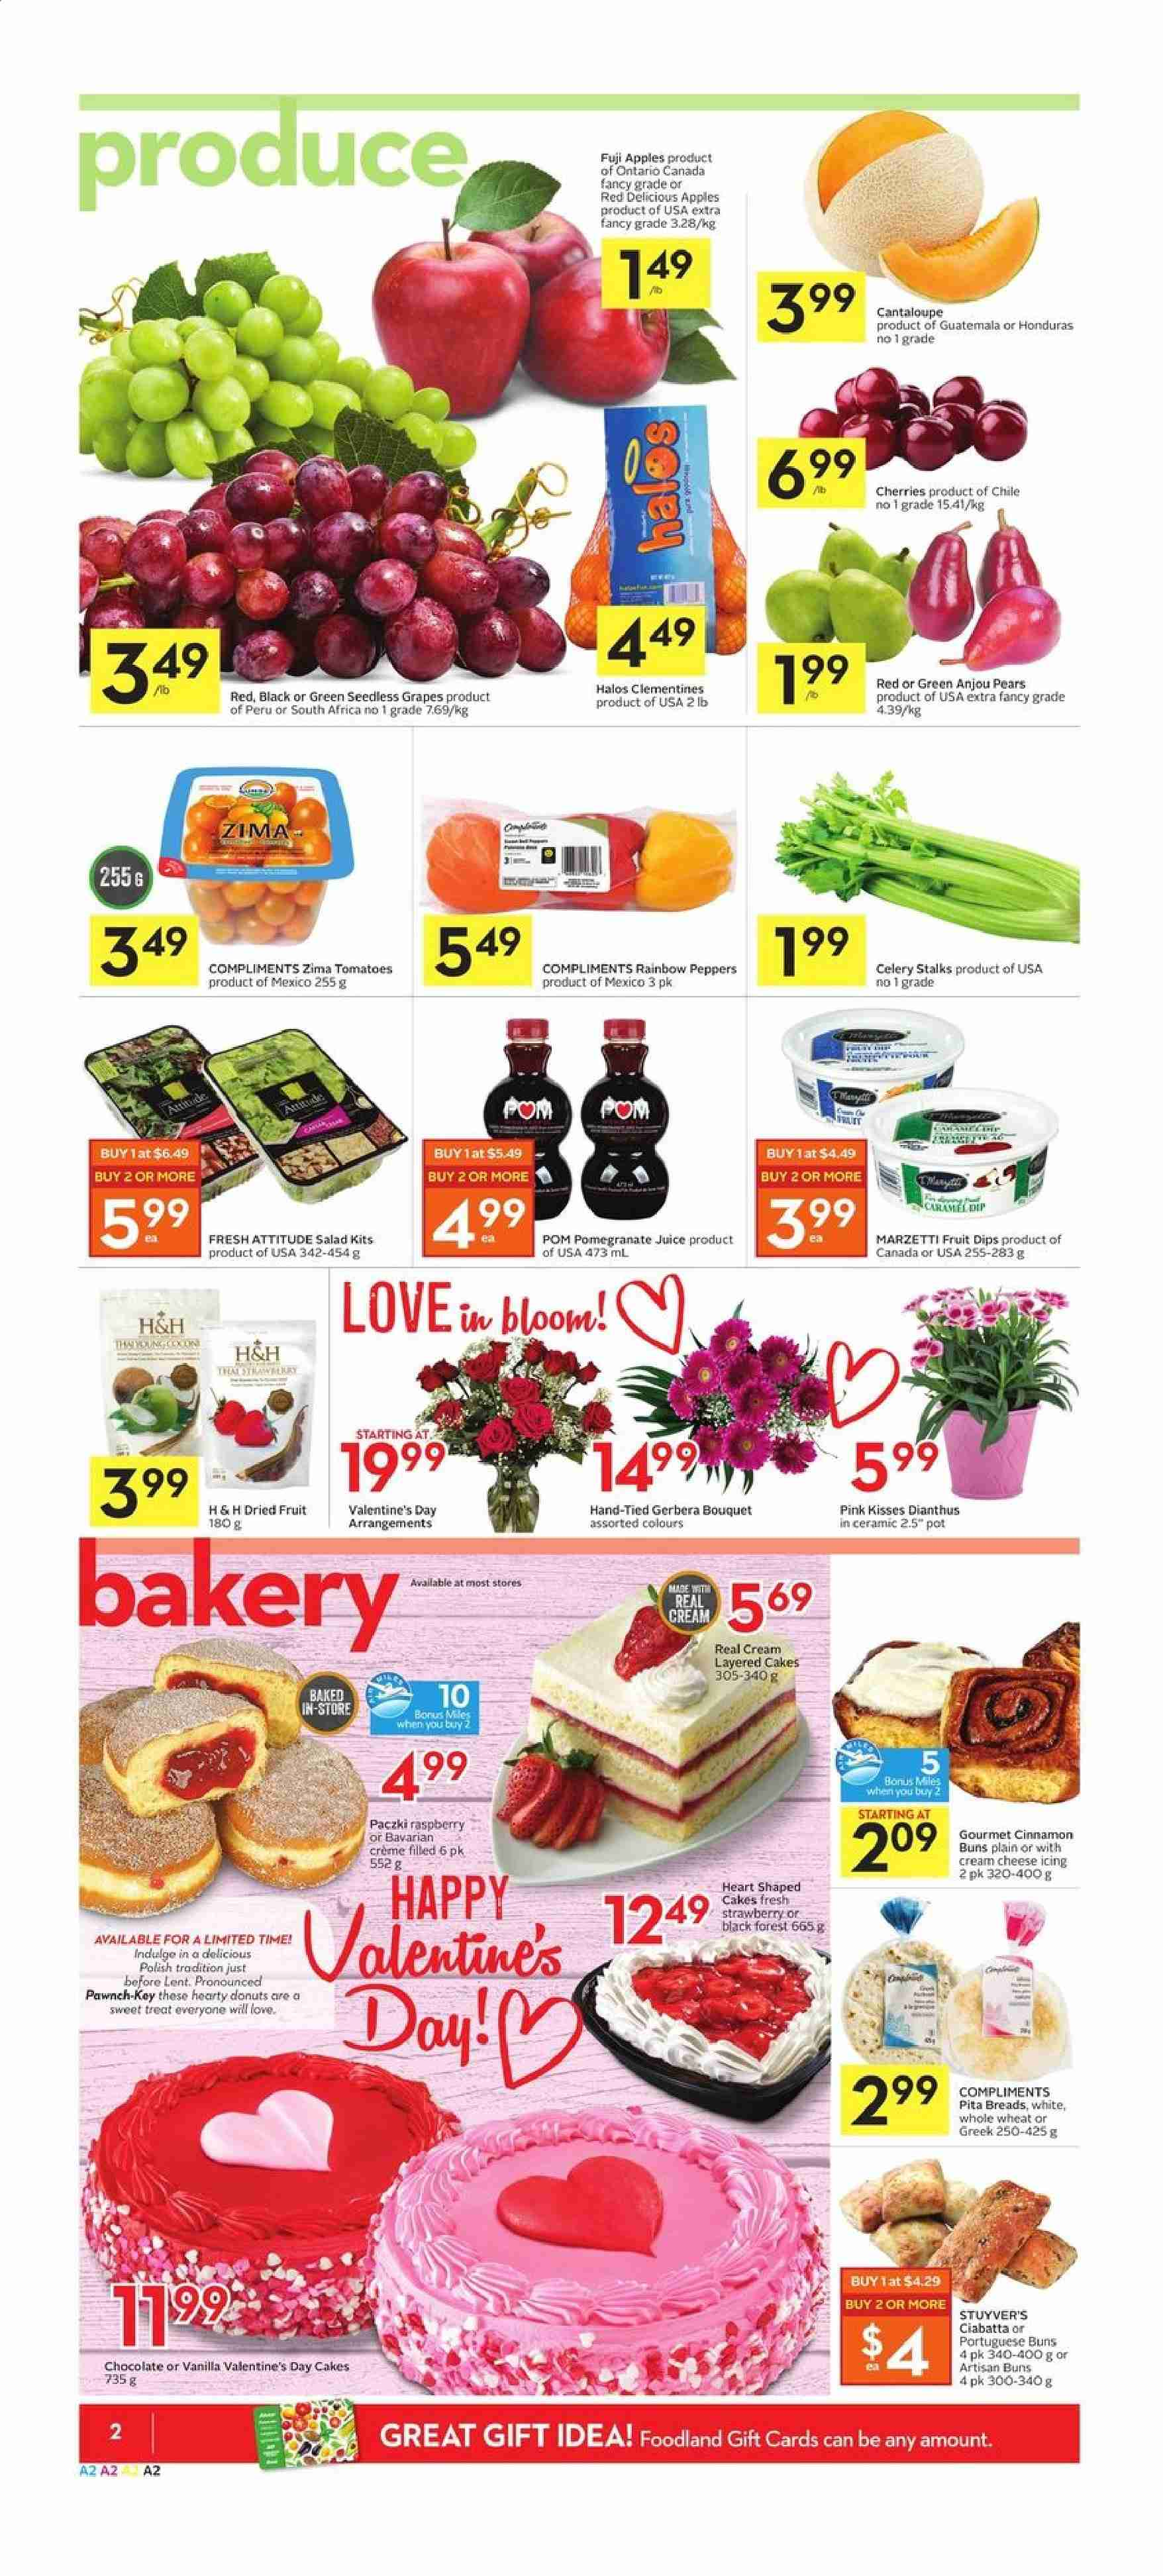 Foodland Flyer  - February 13, 2020 - February 19, 2020. Page 2.